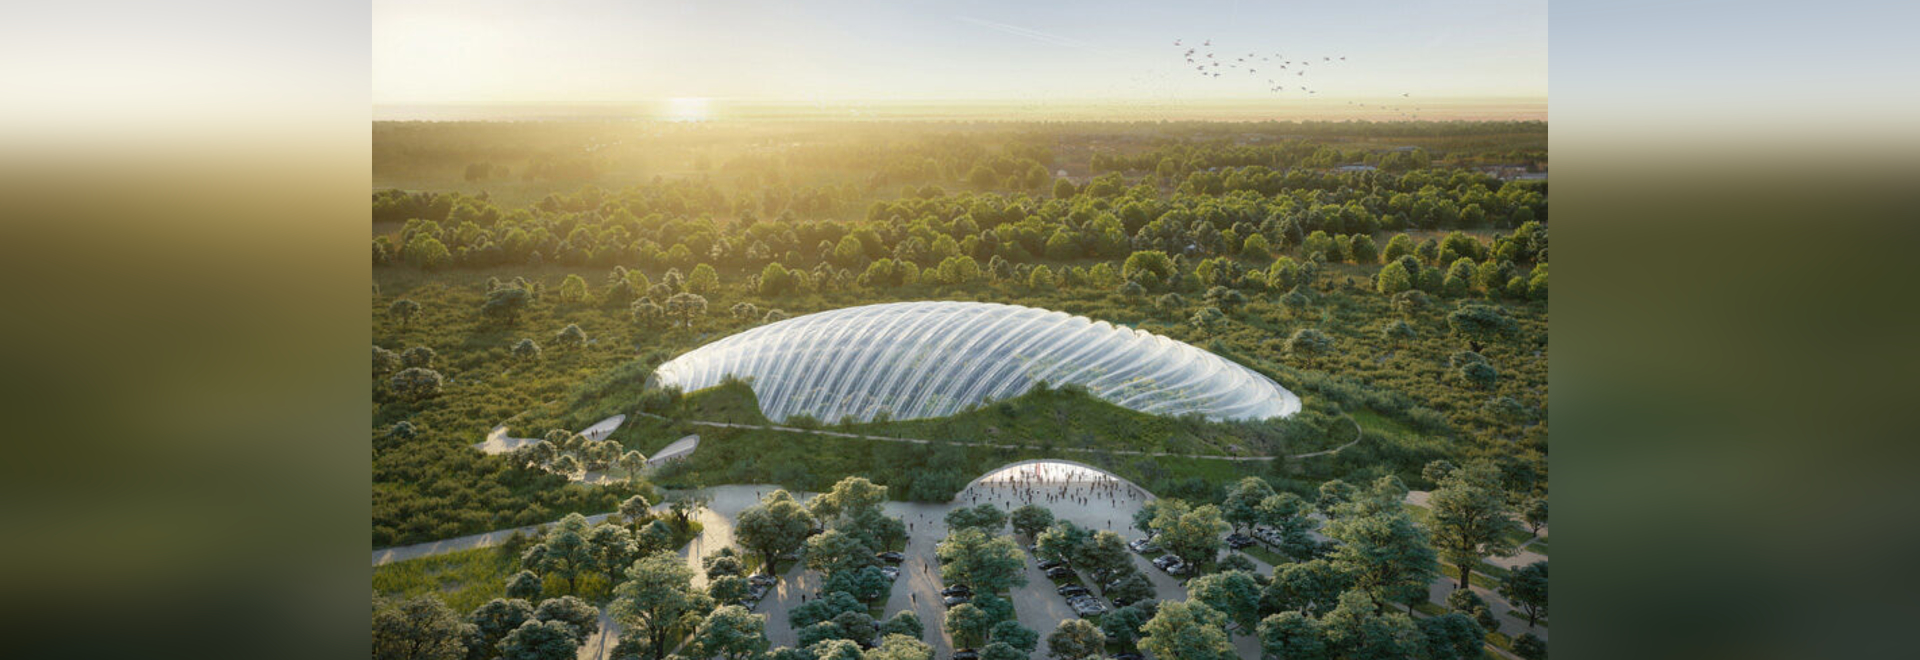 Tropicalia greenhouse by Coldefy, 2024